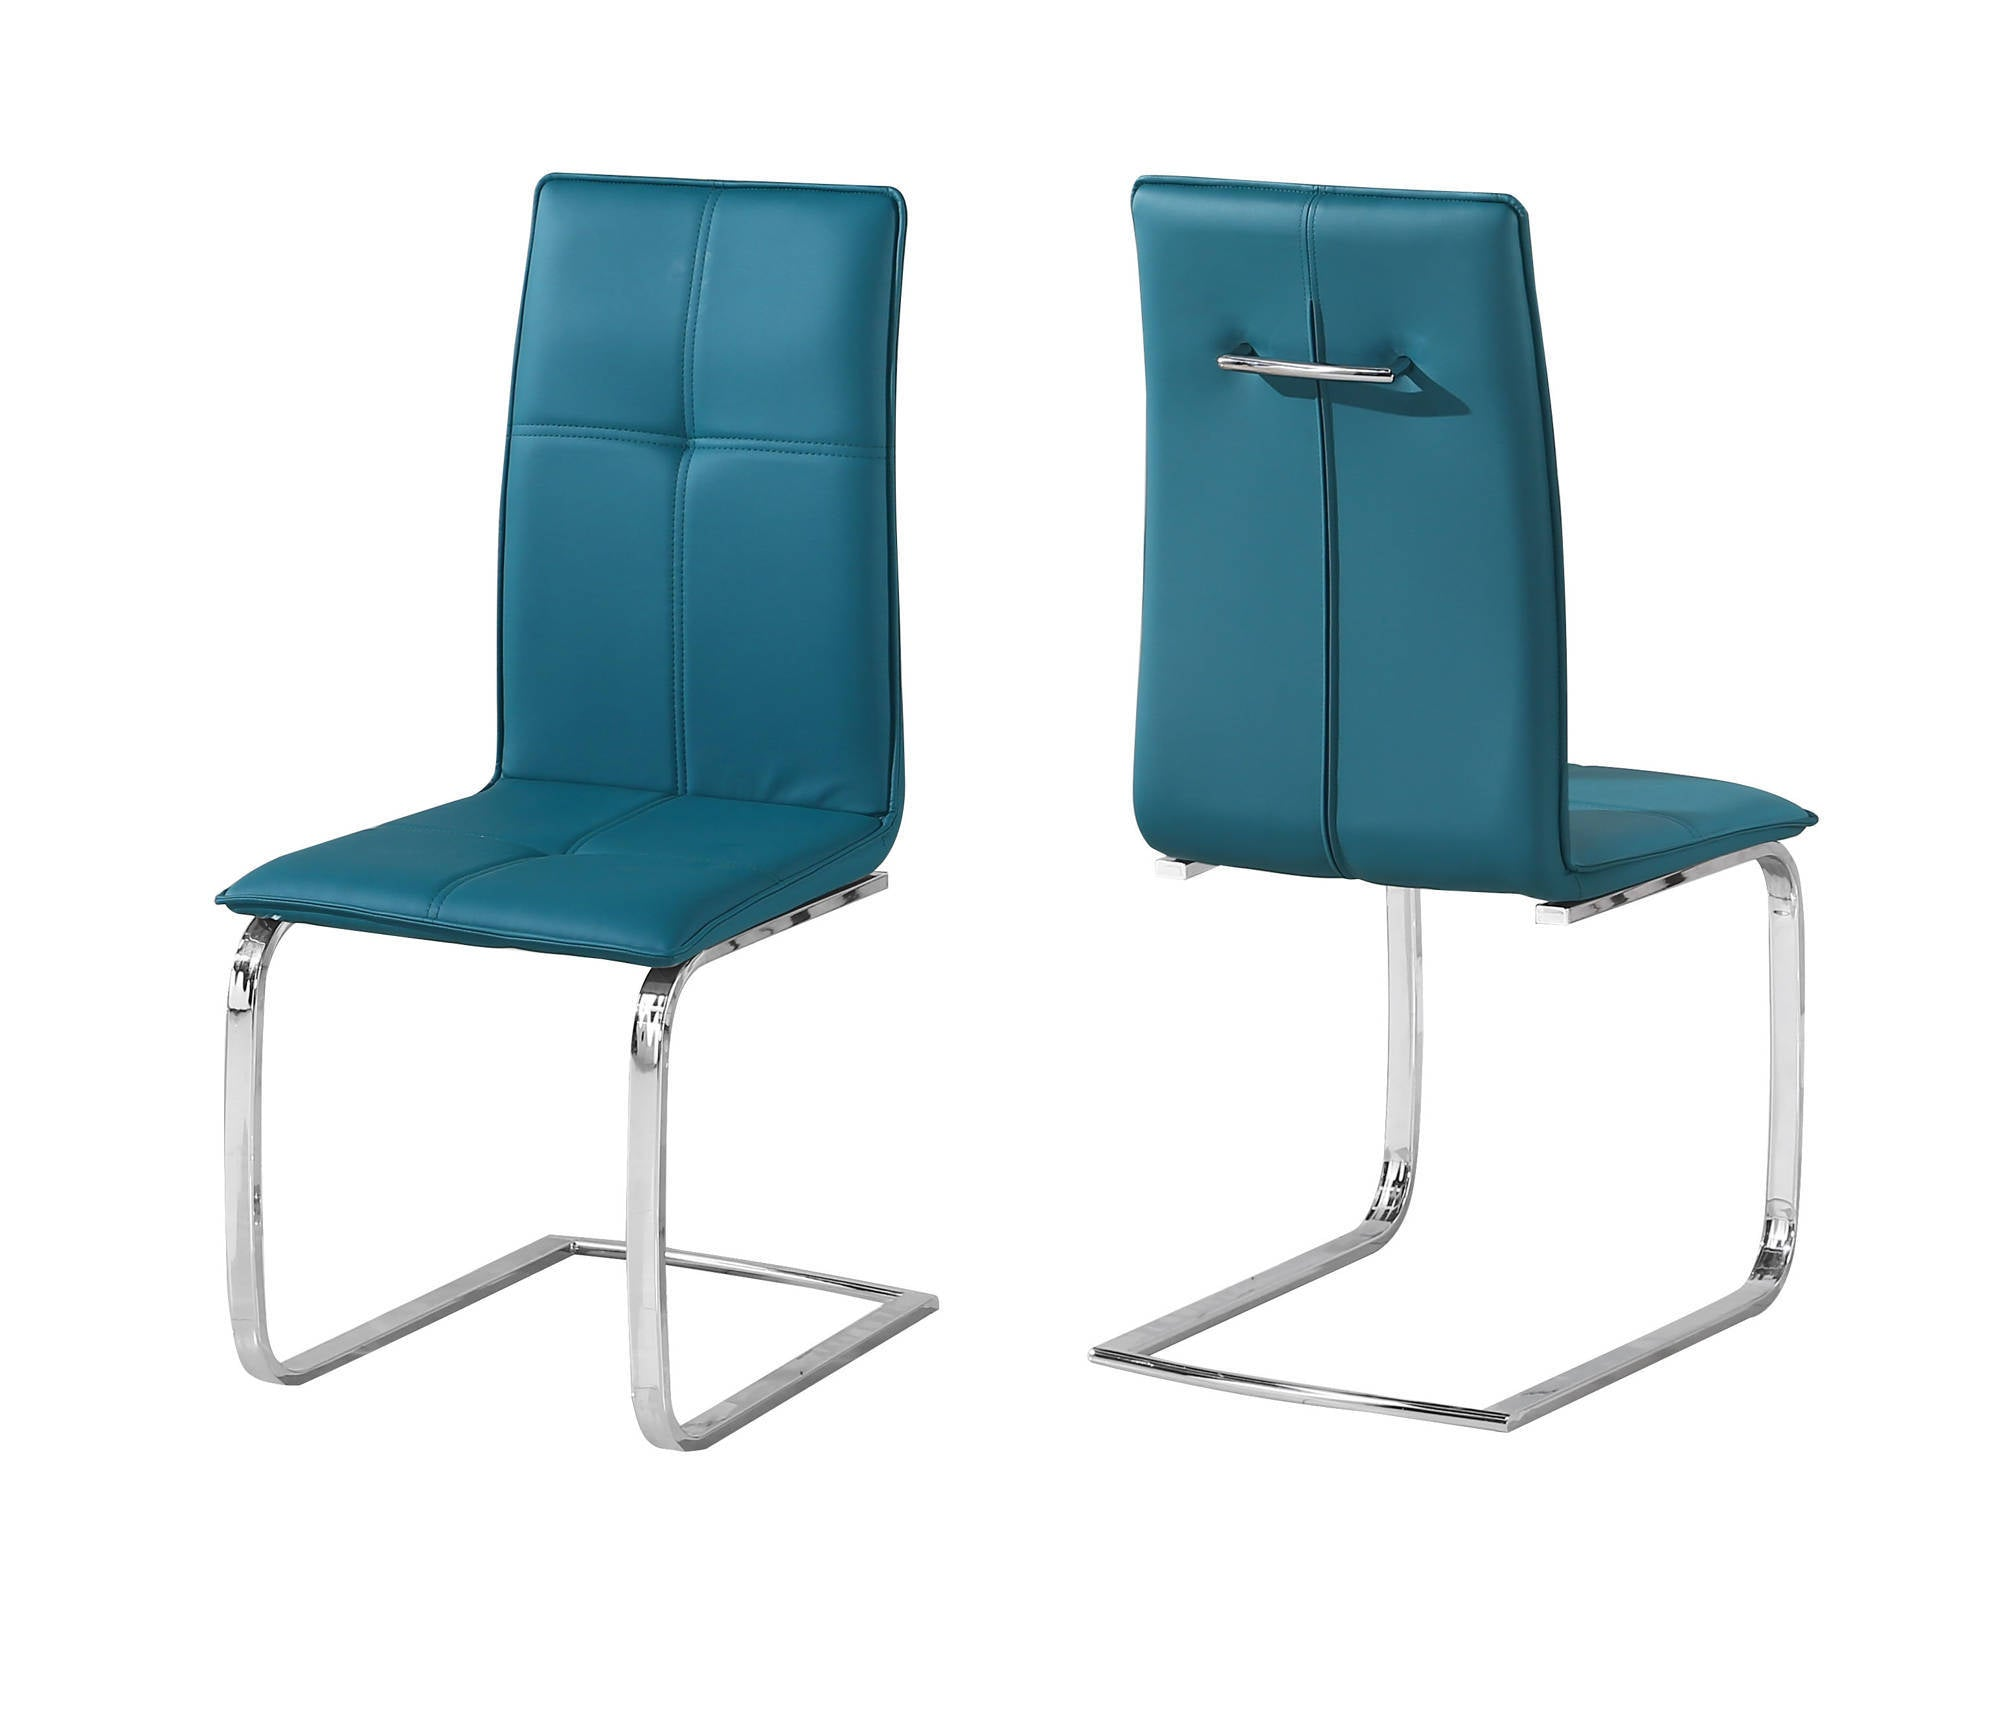 Oeuvre Dining Chairs in Teal